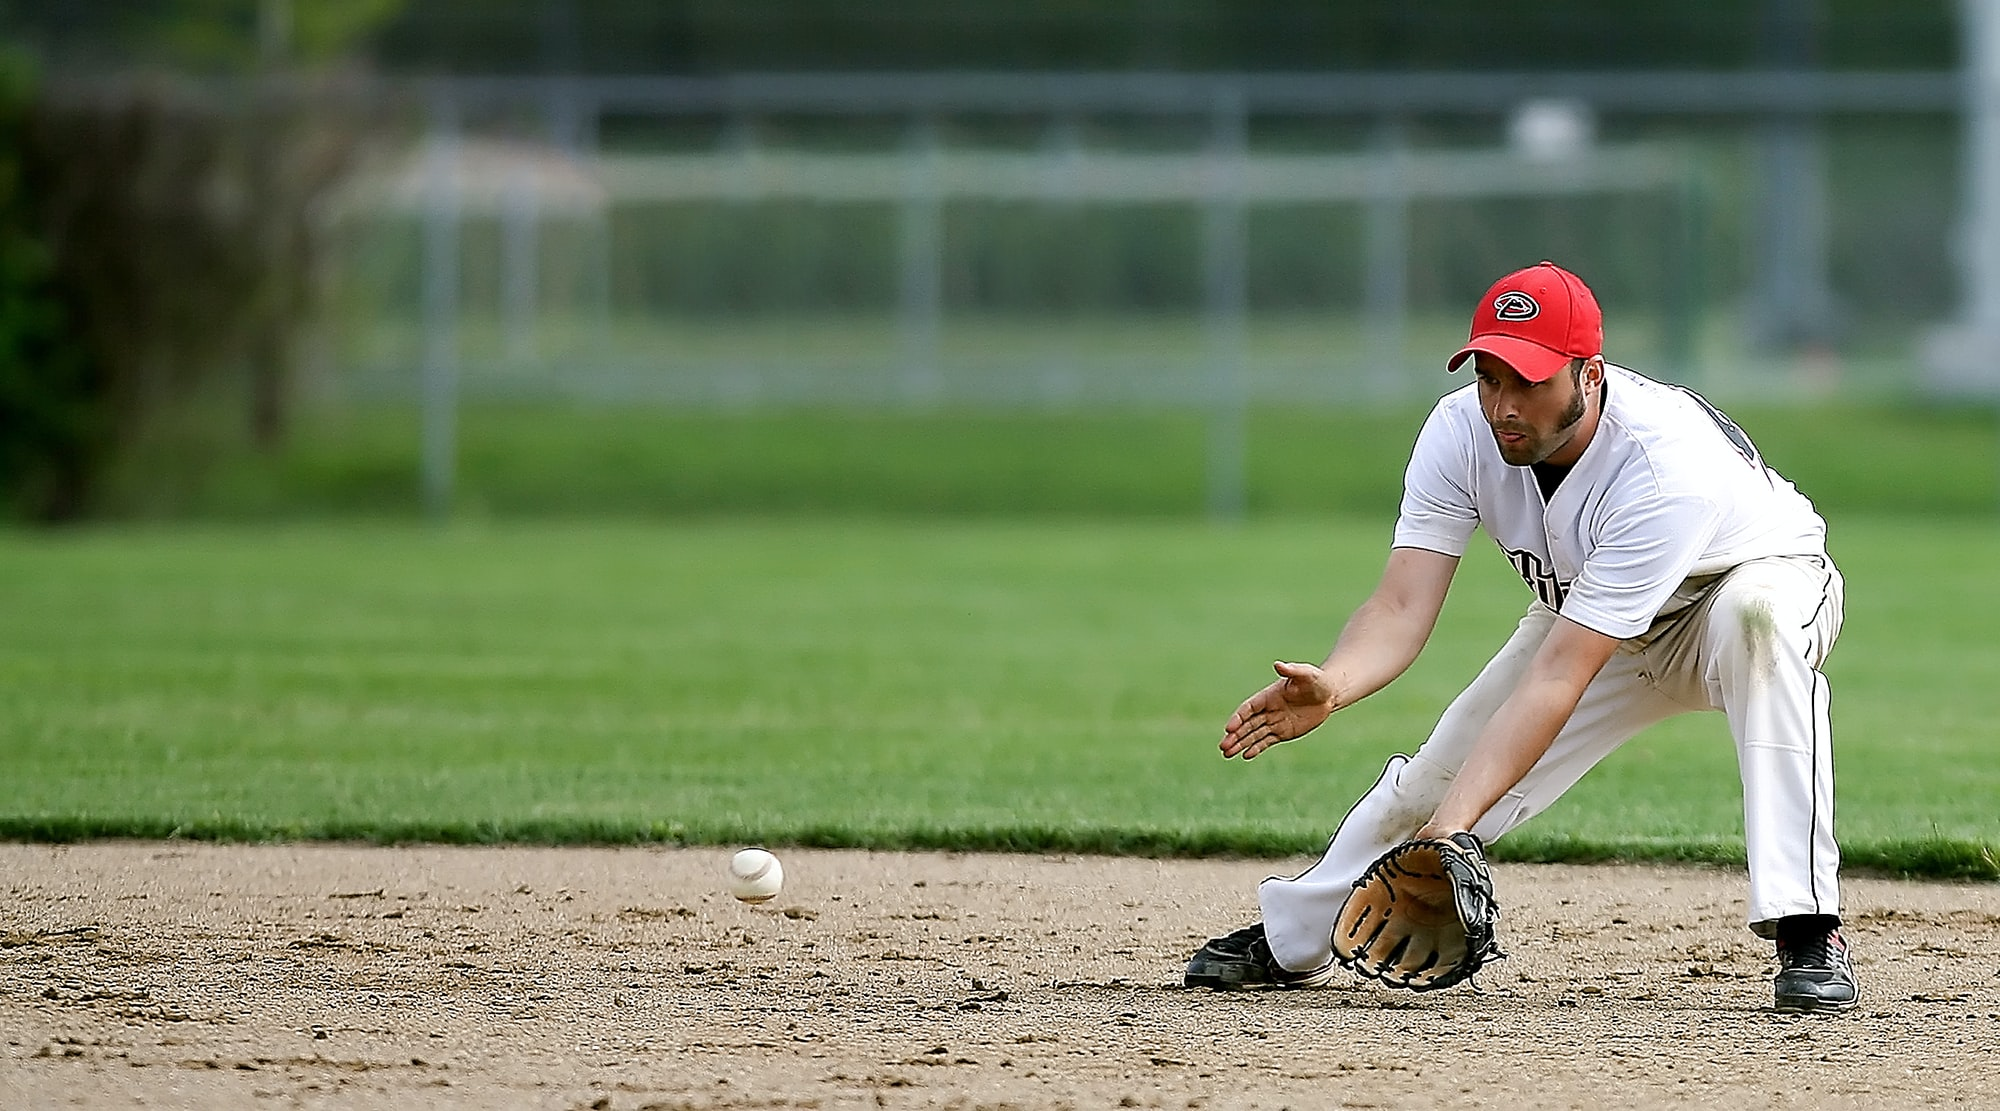 Fielding the grounder